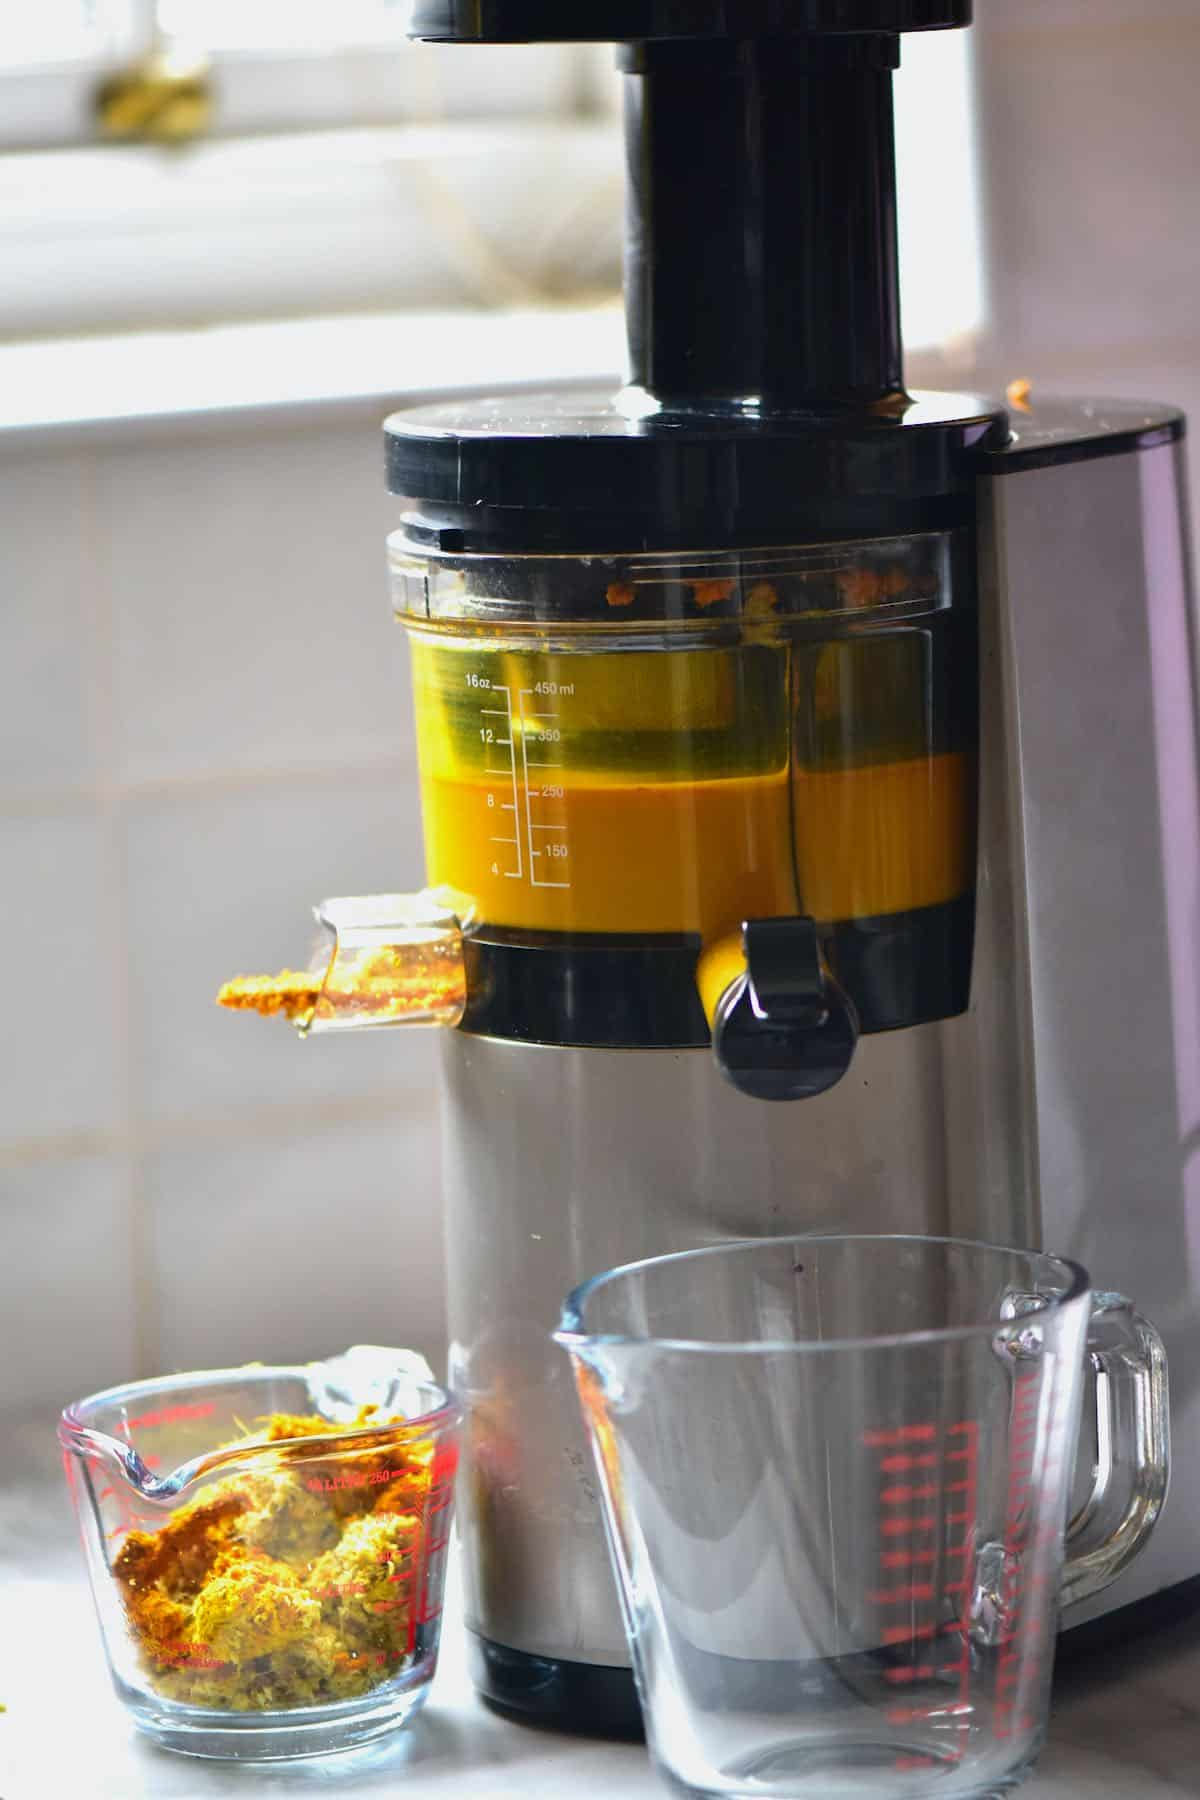 Juicing turmeric with a juicer